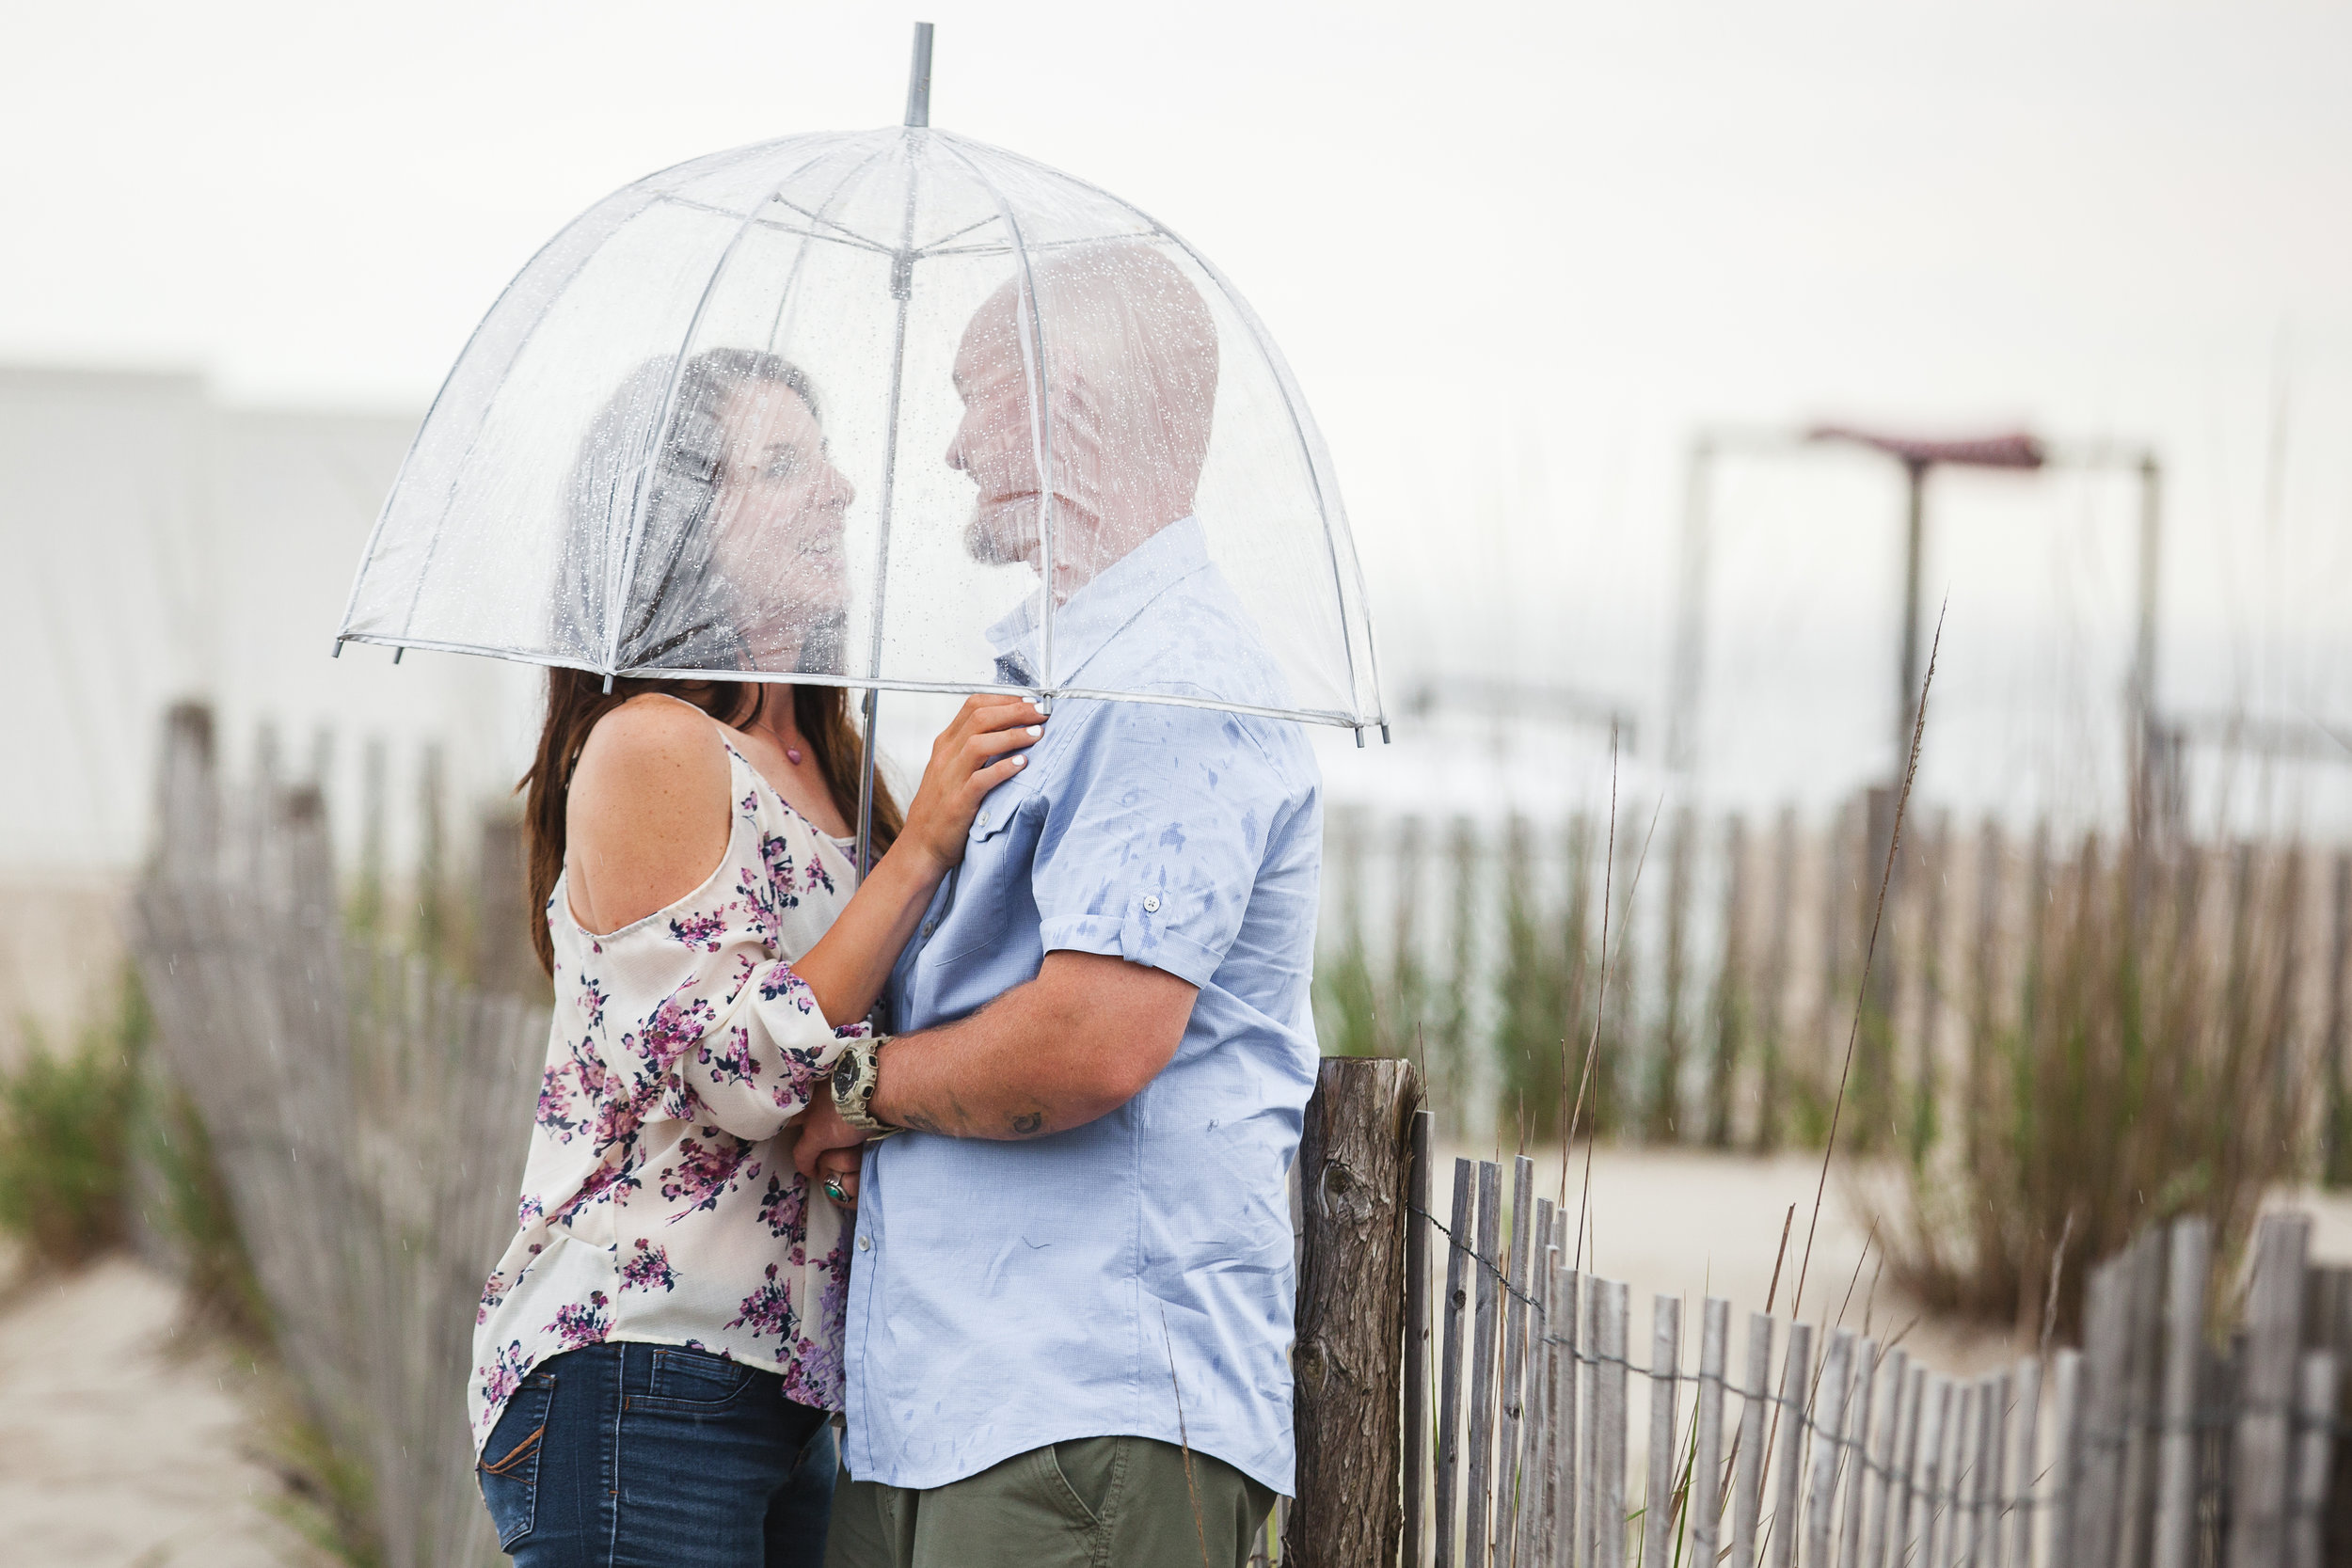 StaceyandJohnEngagementPrints-64.jpg